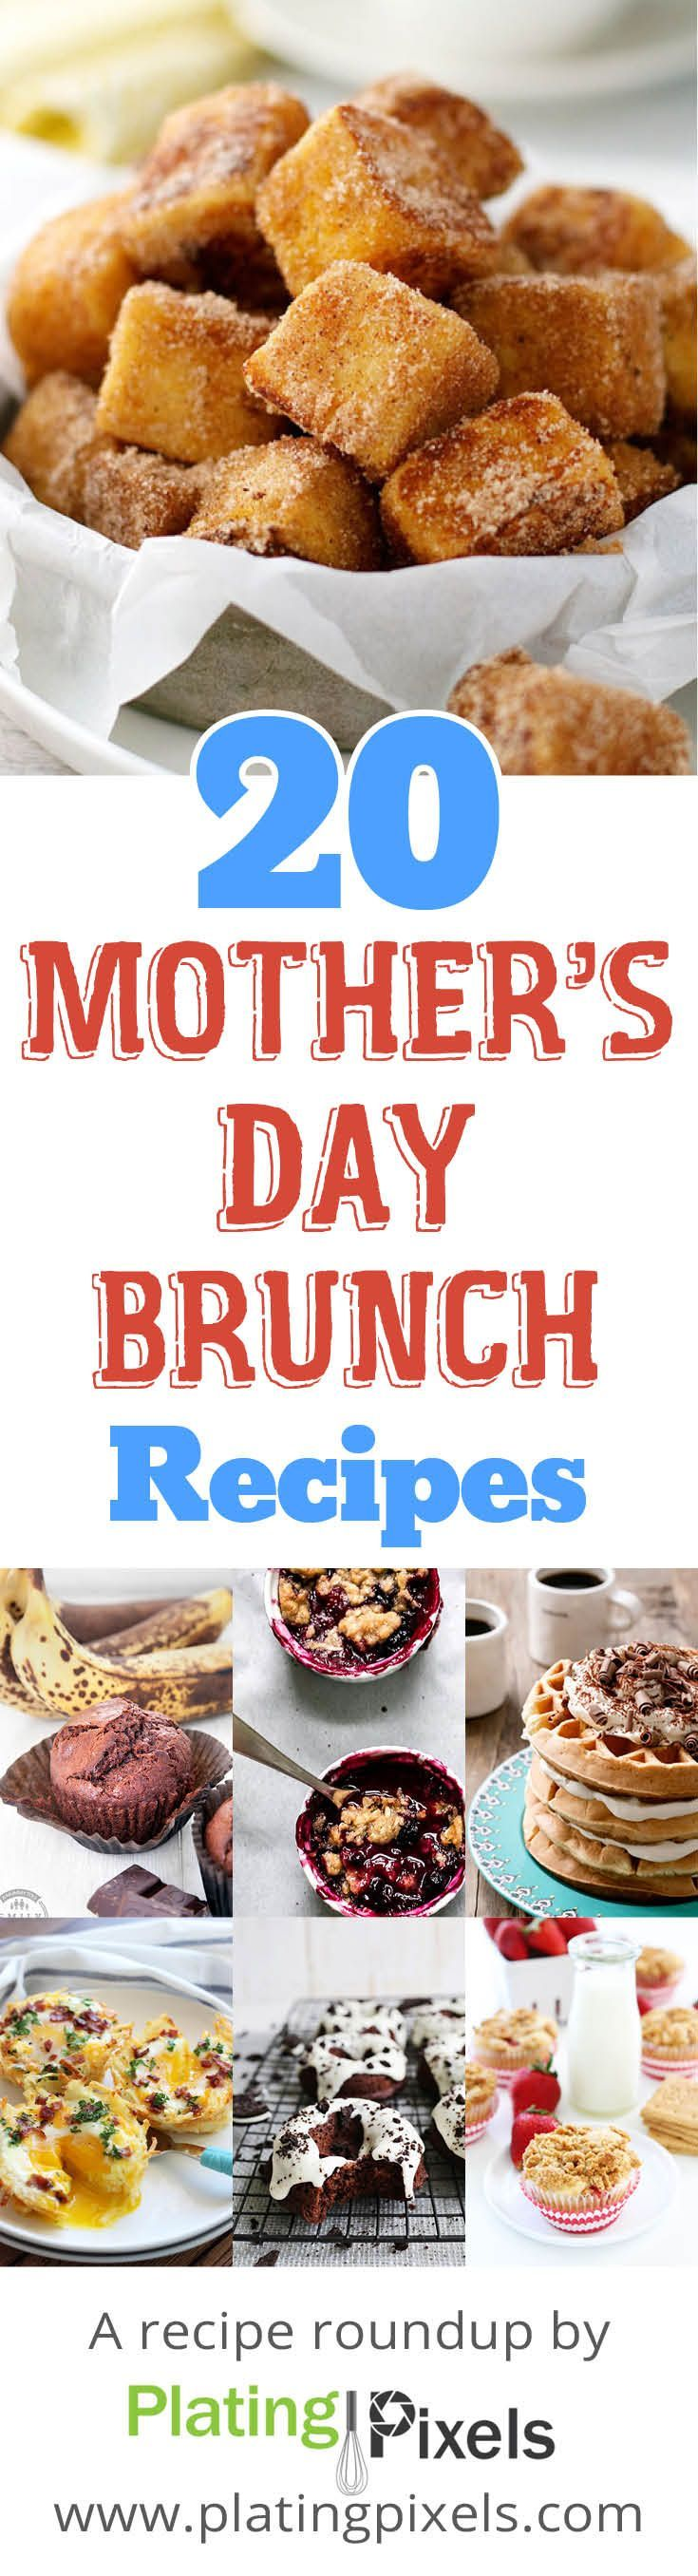 20 Mother's Day brunch recipes roundup by Plating Pixels. Muffins, waffles, breakfast breads, omelets, bakes and sweets for Mother's Day brunch recipe ideas. Best brunch recipes. - www.platingpixels.com